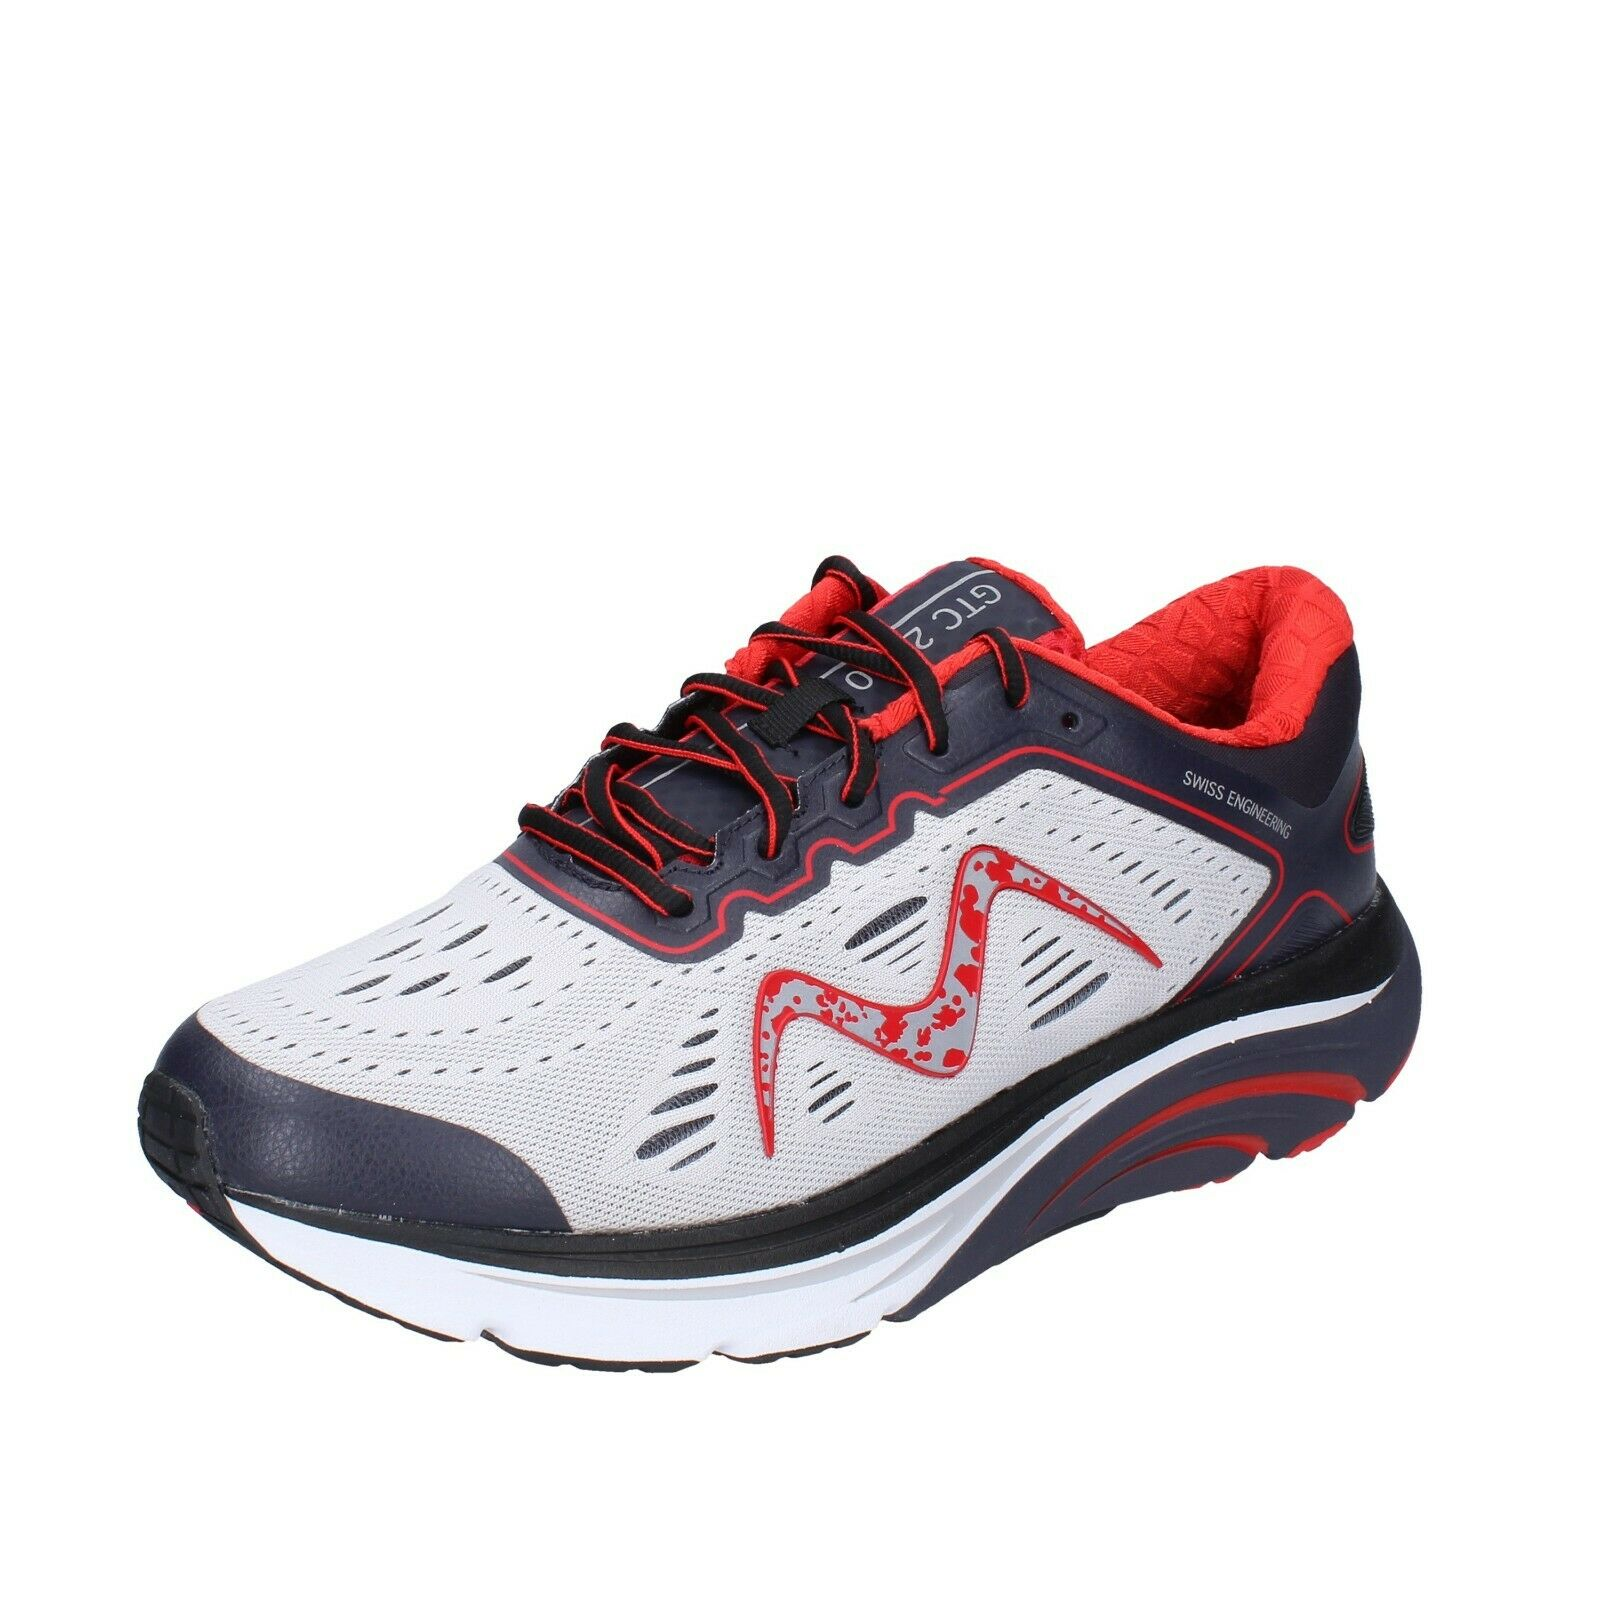 Mens MBT Shoes 45 EU Sneakers Red Fabric Blue bh660